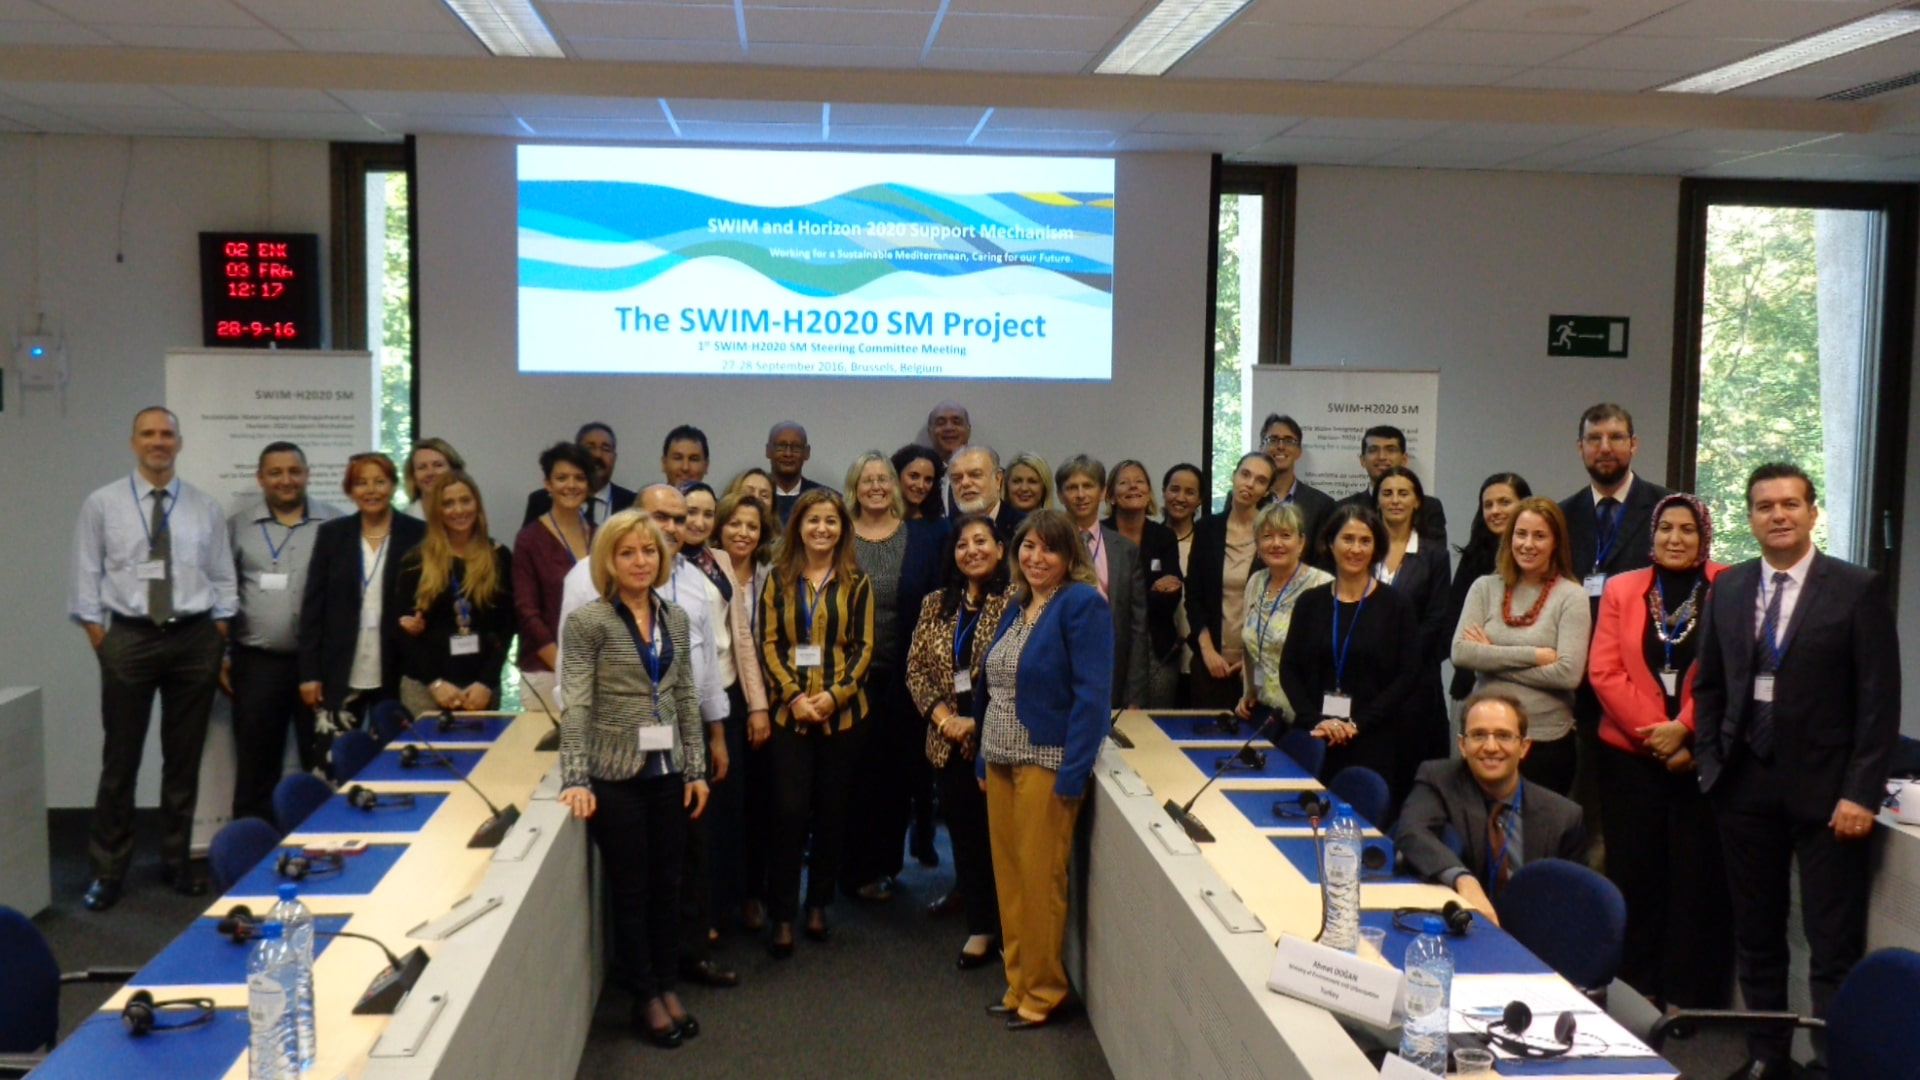 27-28 Sept. 2016, Brussels, Belgium – 1st Steering Committee Meeting SWIM-H2020 SM